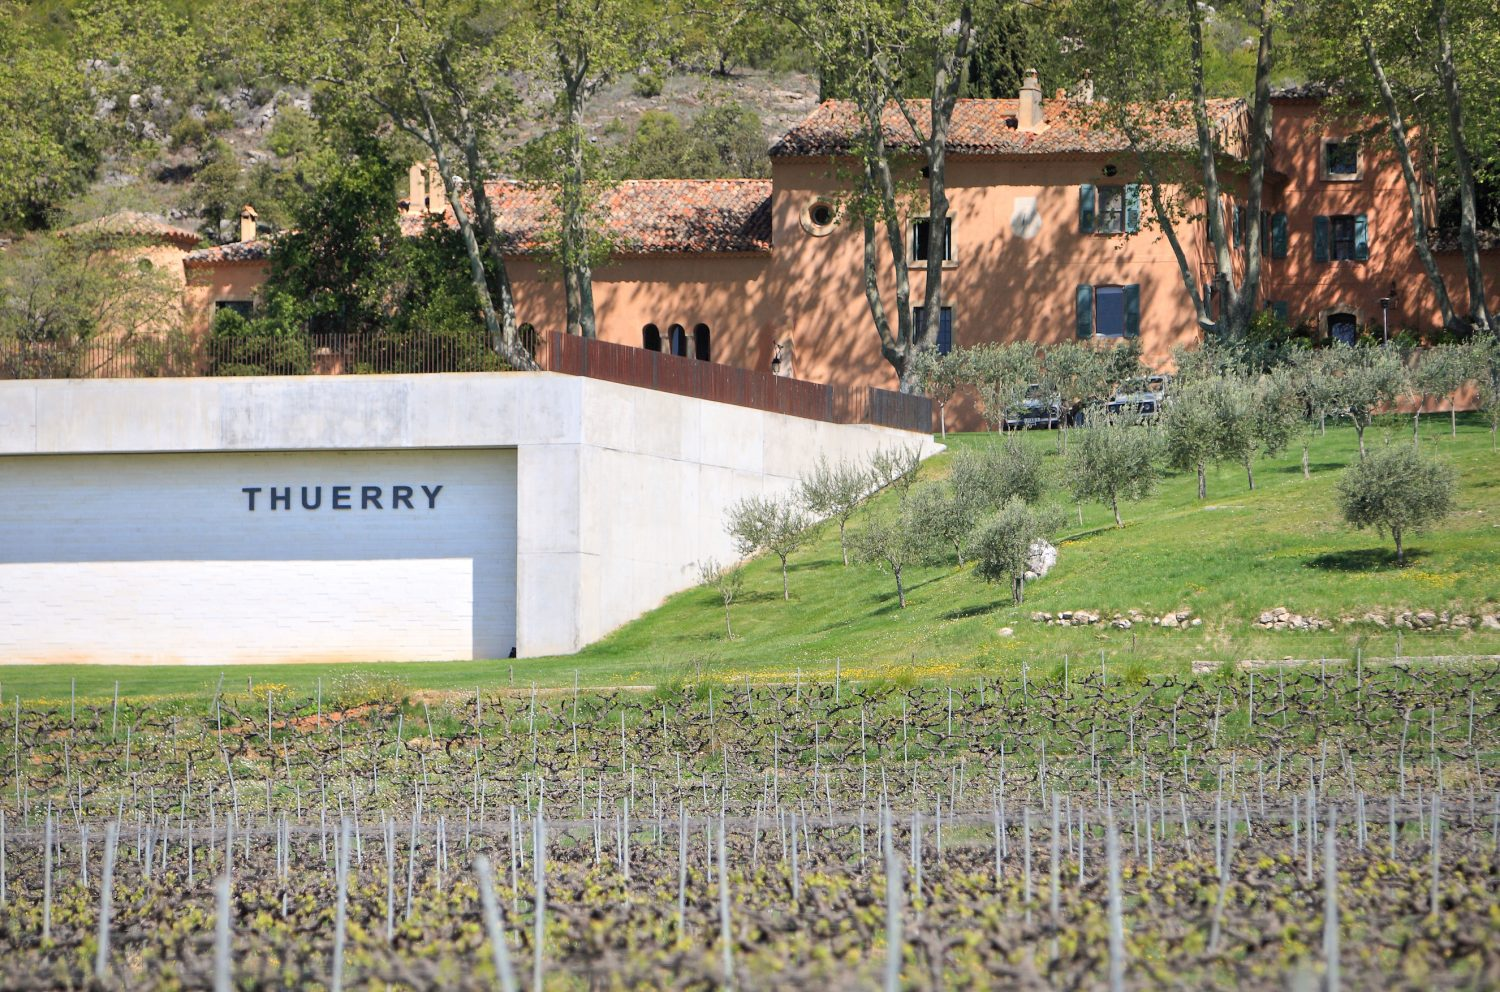 villa thuerry vineyard